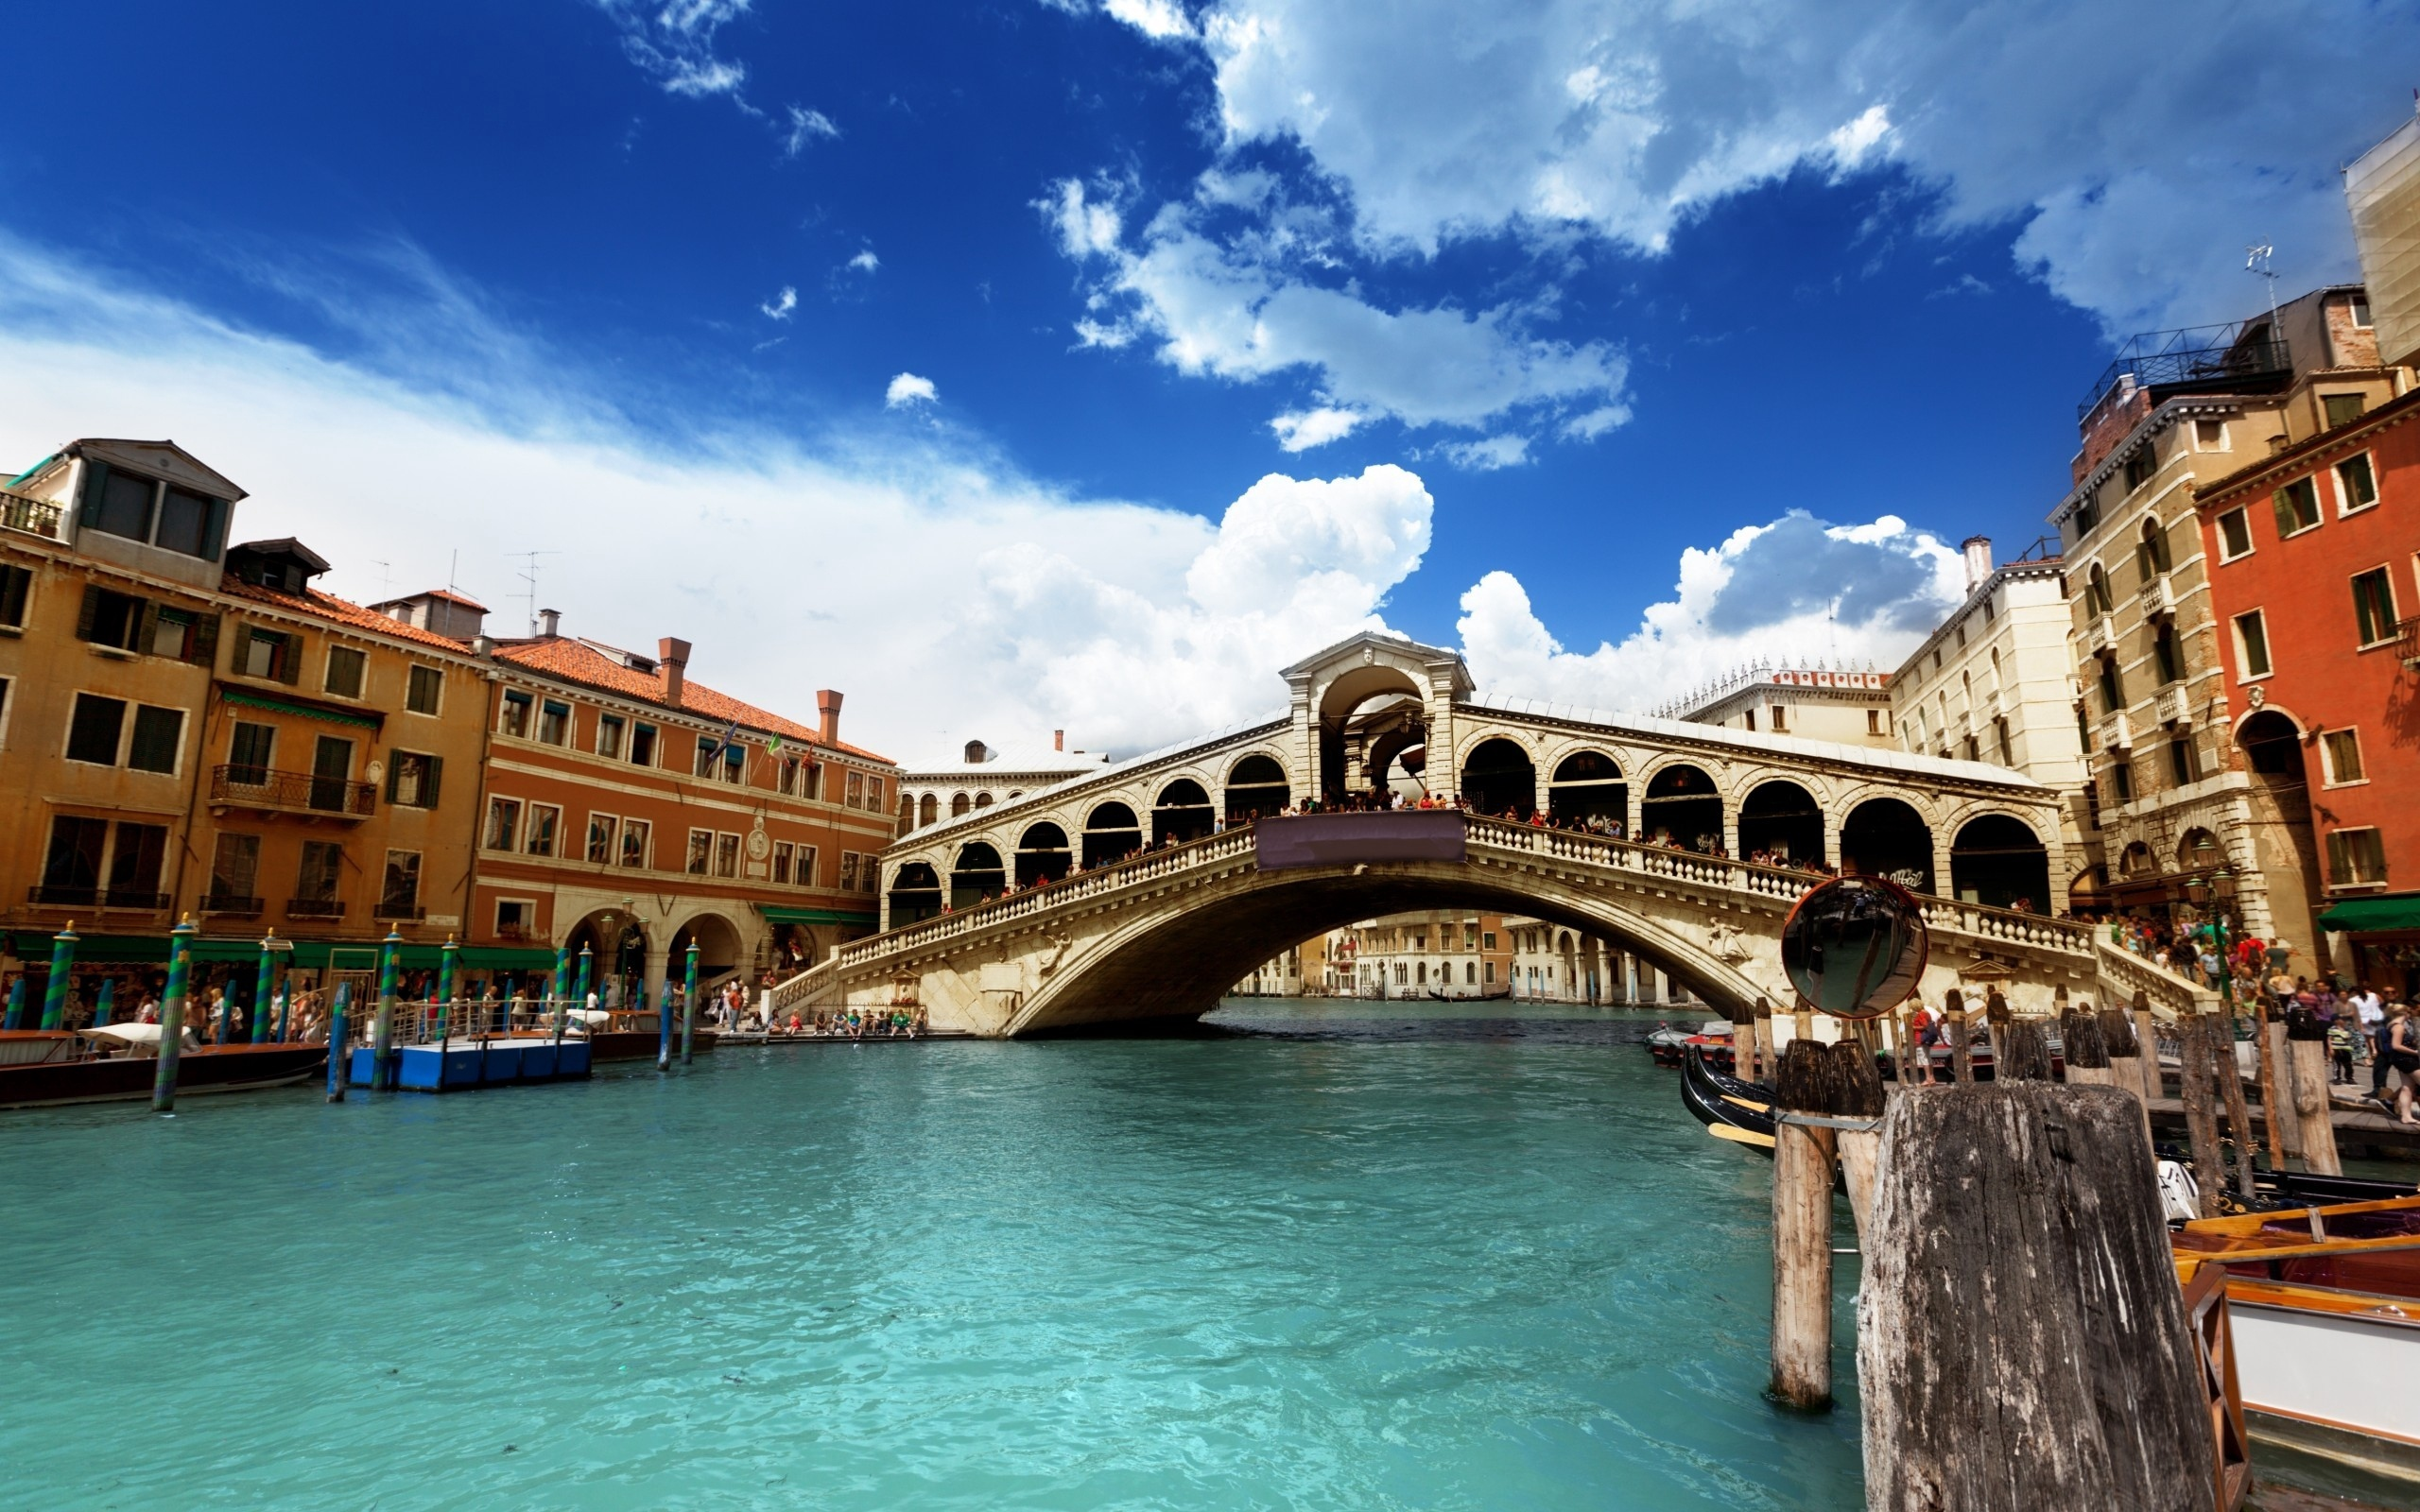 Venice Italy River Building   Stock Photos Images HD 2560x1600